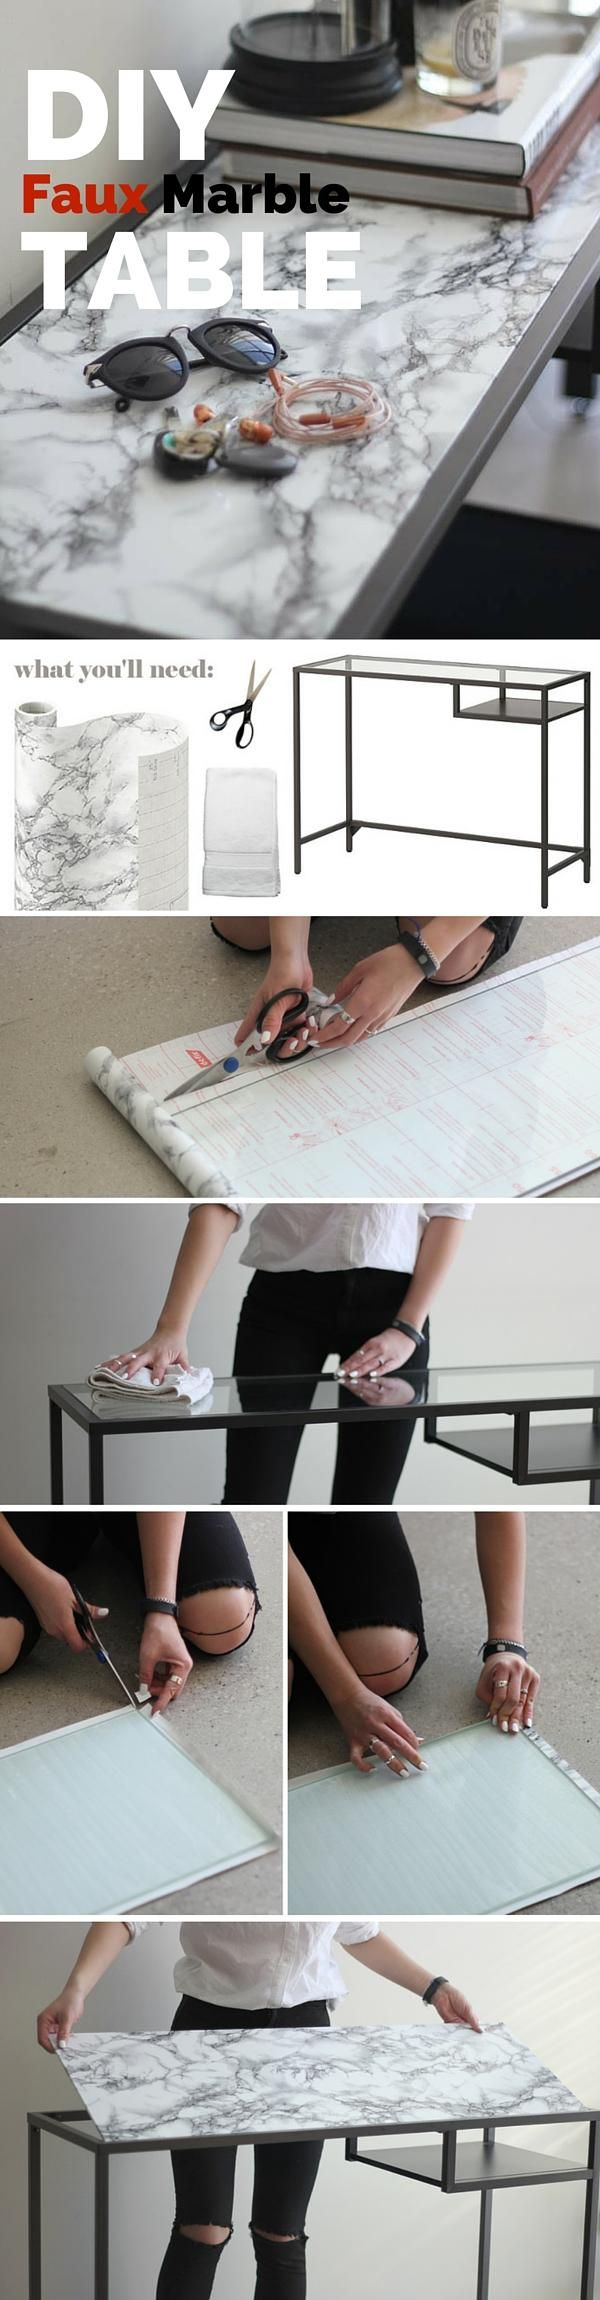 You'll need: – Marble Contact Paper – Scissors – Small hand towel – Ikea Vittsjo or any table or surface you would like to marbleize More info and instructions about this great tutorial you can find in the source url - above the photo. diyfuntips.com is a collection of the best and most creative do […]